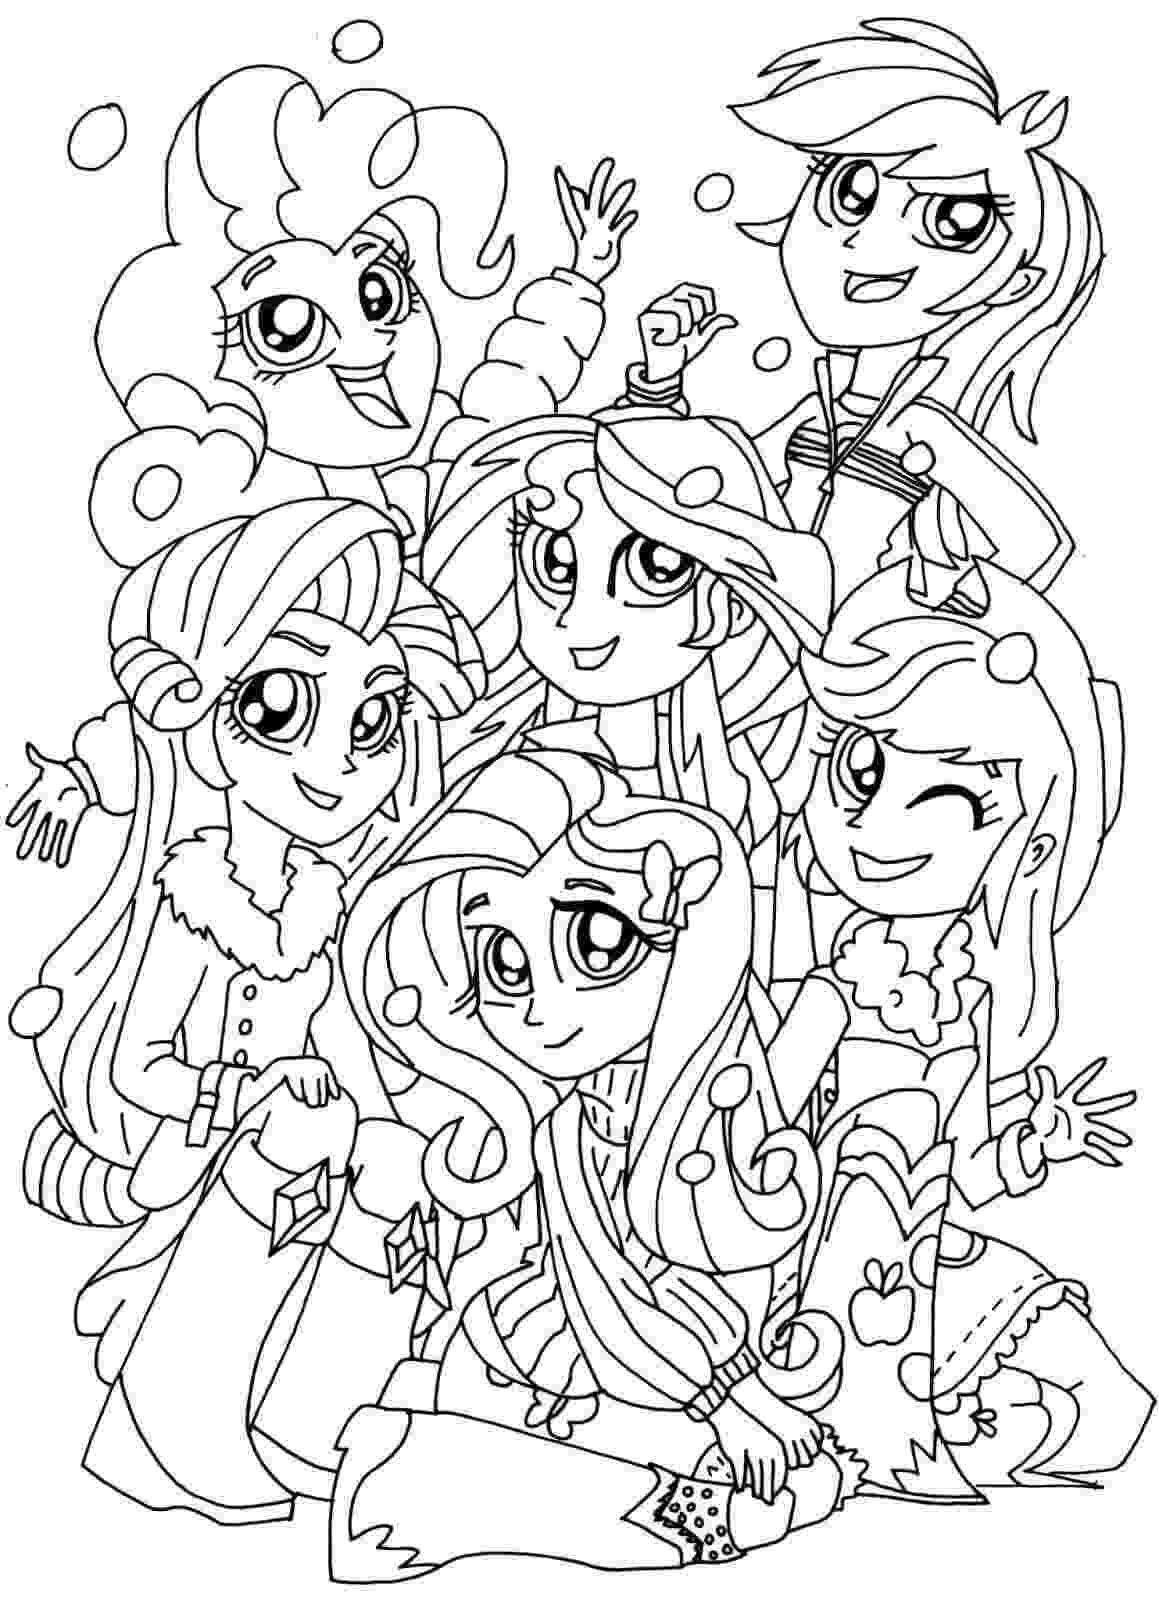 my little pony equestria coloring pages equestria girls coloring pages best coloring pages for kids equestria pony little pages my coloring